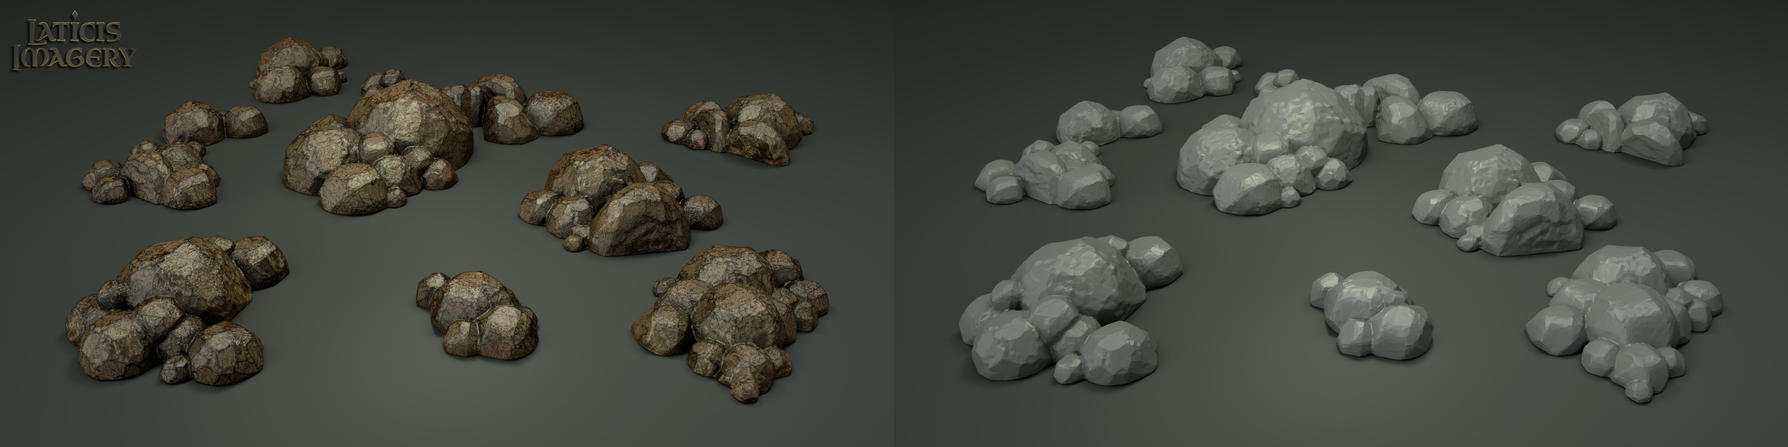 Laticis Imagery FREE Object - Rock Segments by Laticis